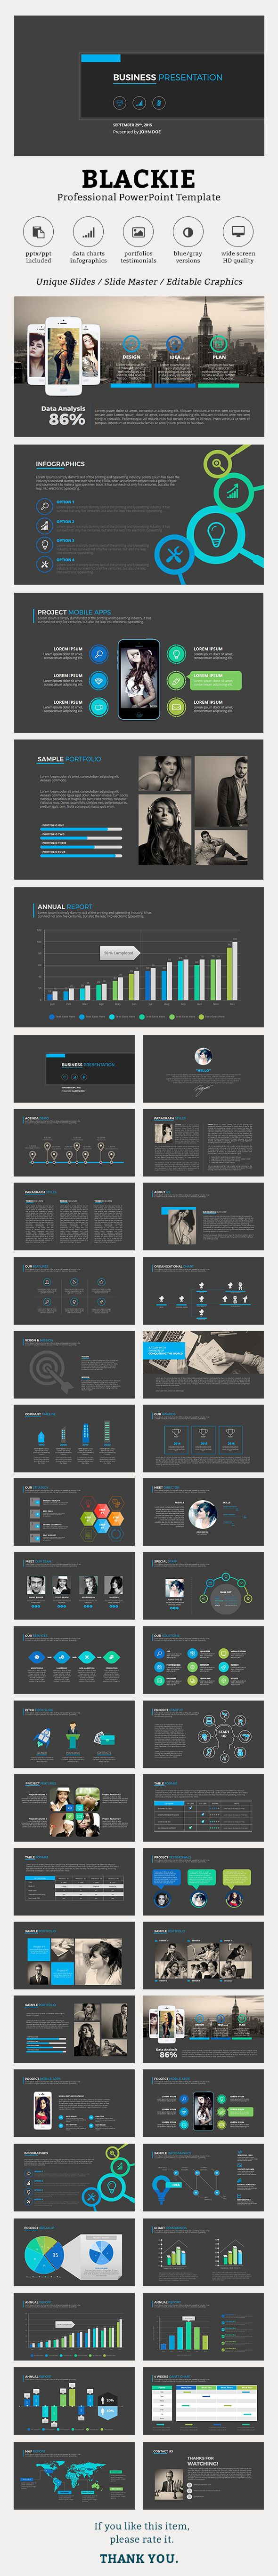 Blackie PowerPoint Template - Business PowerPoint Templates